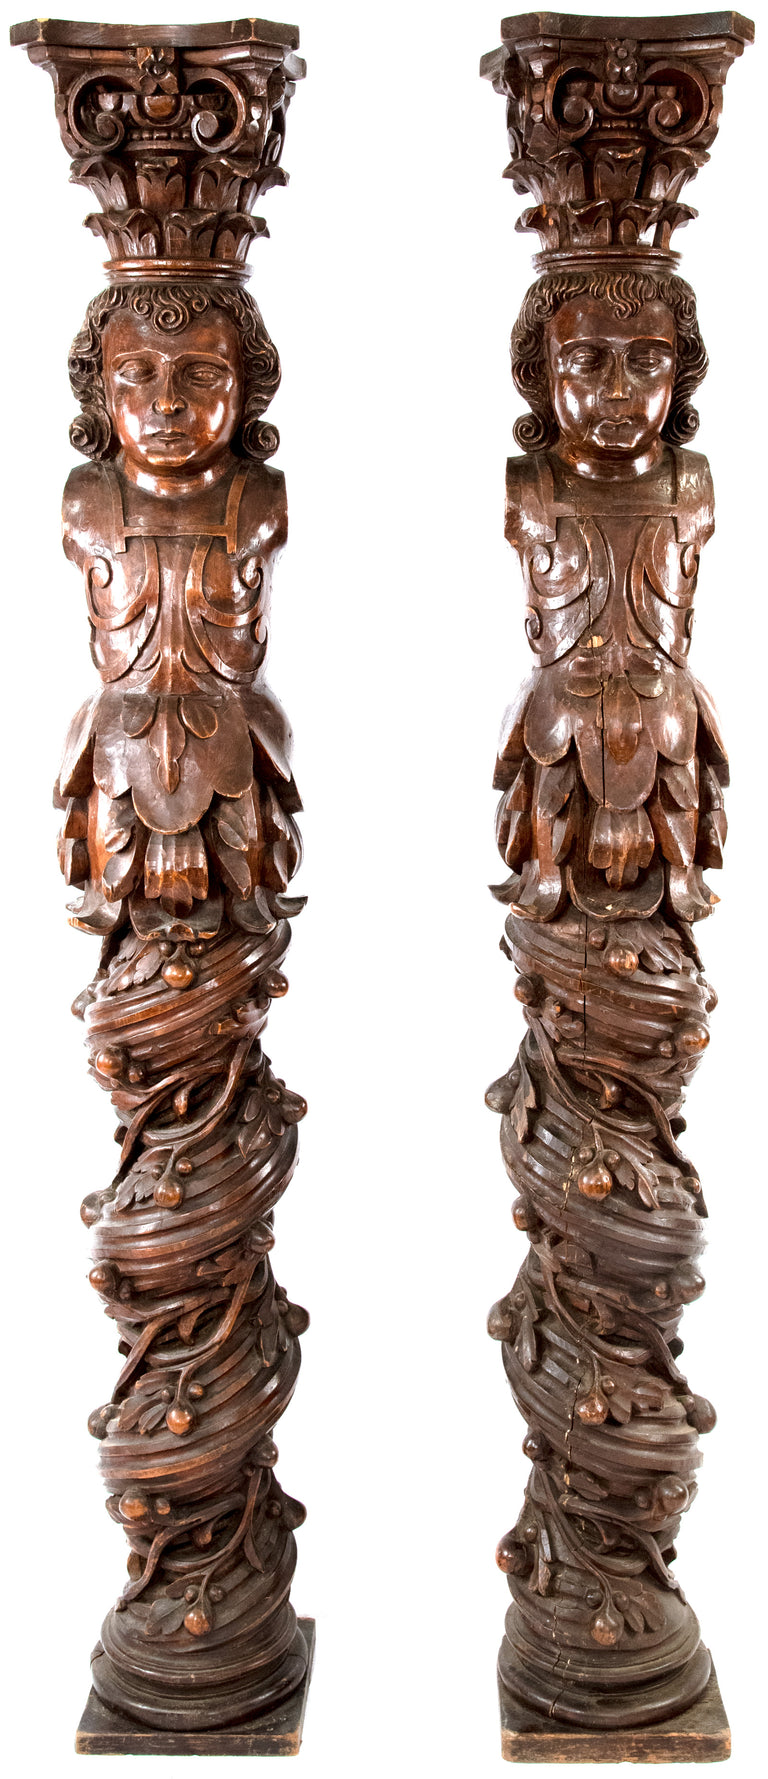 A Pair of 17th Century Carved Oak Figural Solomonic Columns